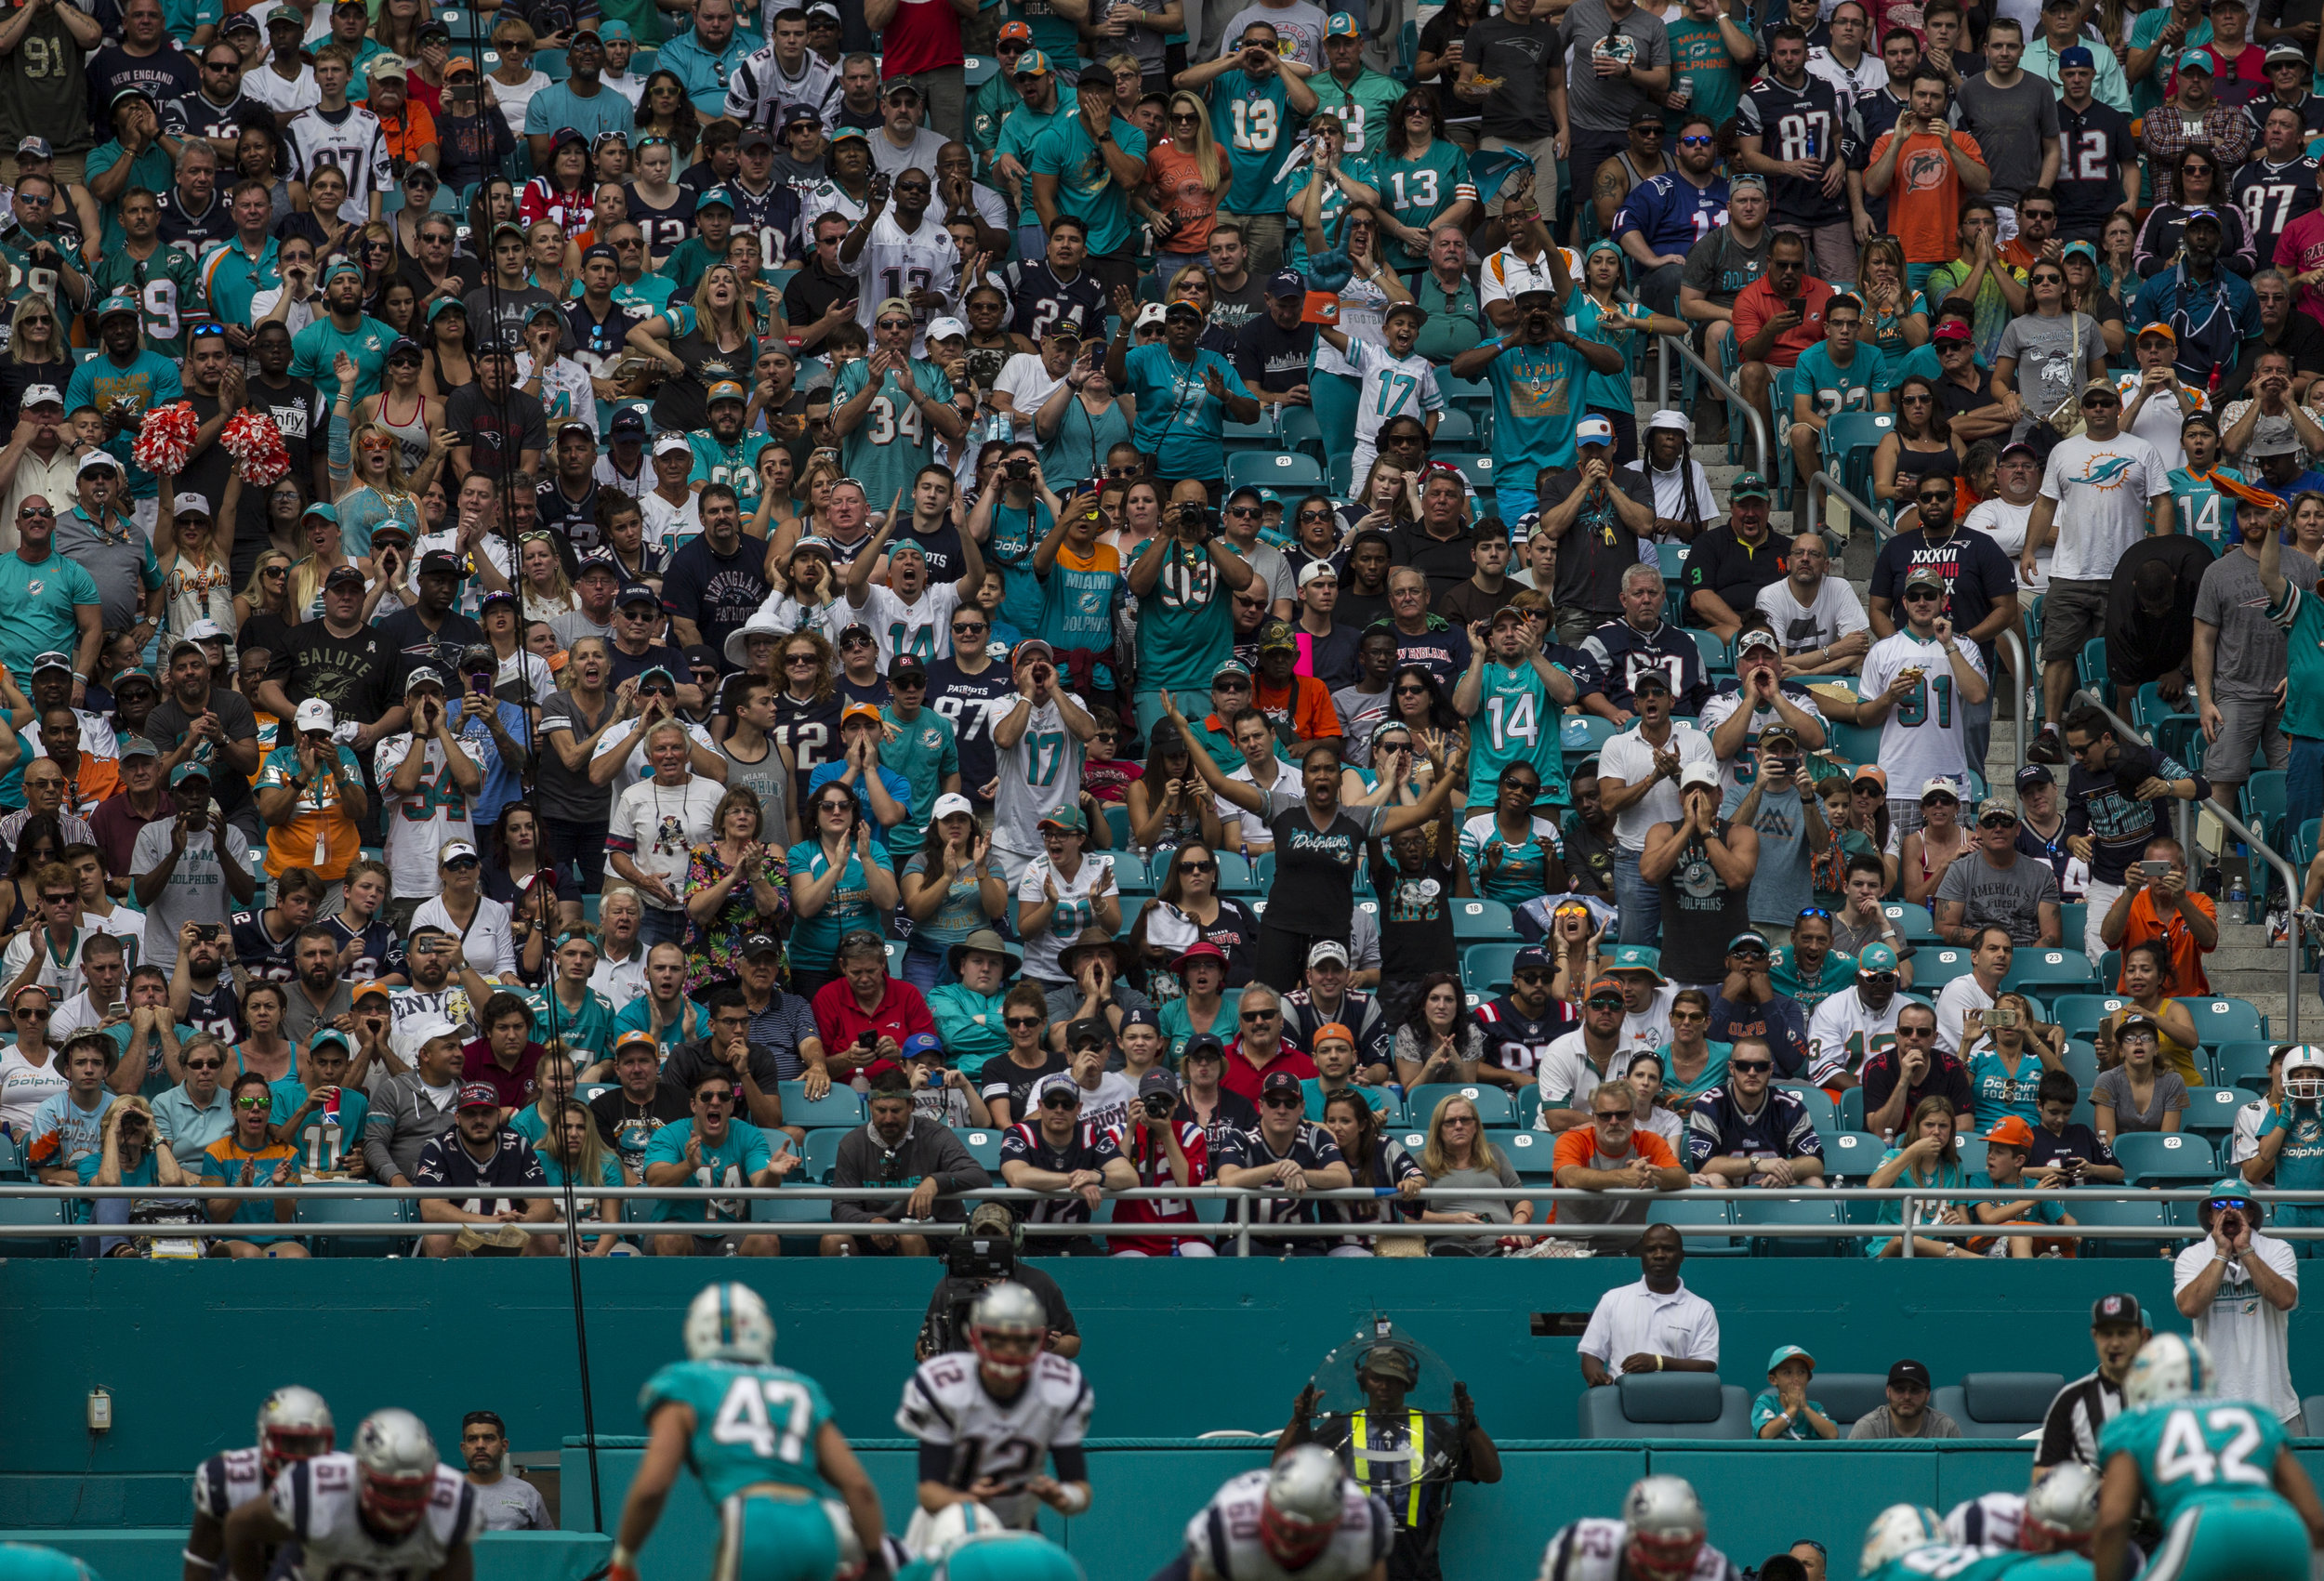 Miami Dolphins fans make some noise as New England Patriots quarterback Tom Brady (12) gets ready to snap the ball at Hard Rock Stadium in Miami Gardens, Florida, January 1, 2017.